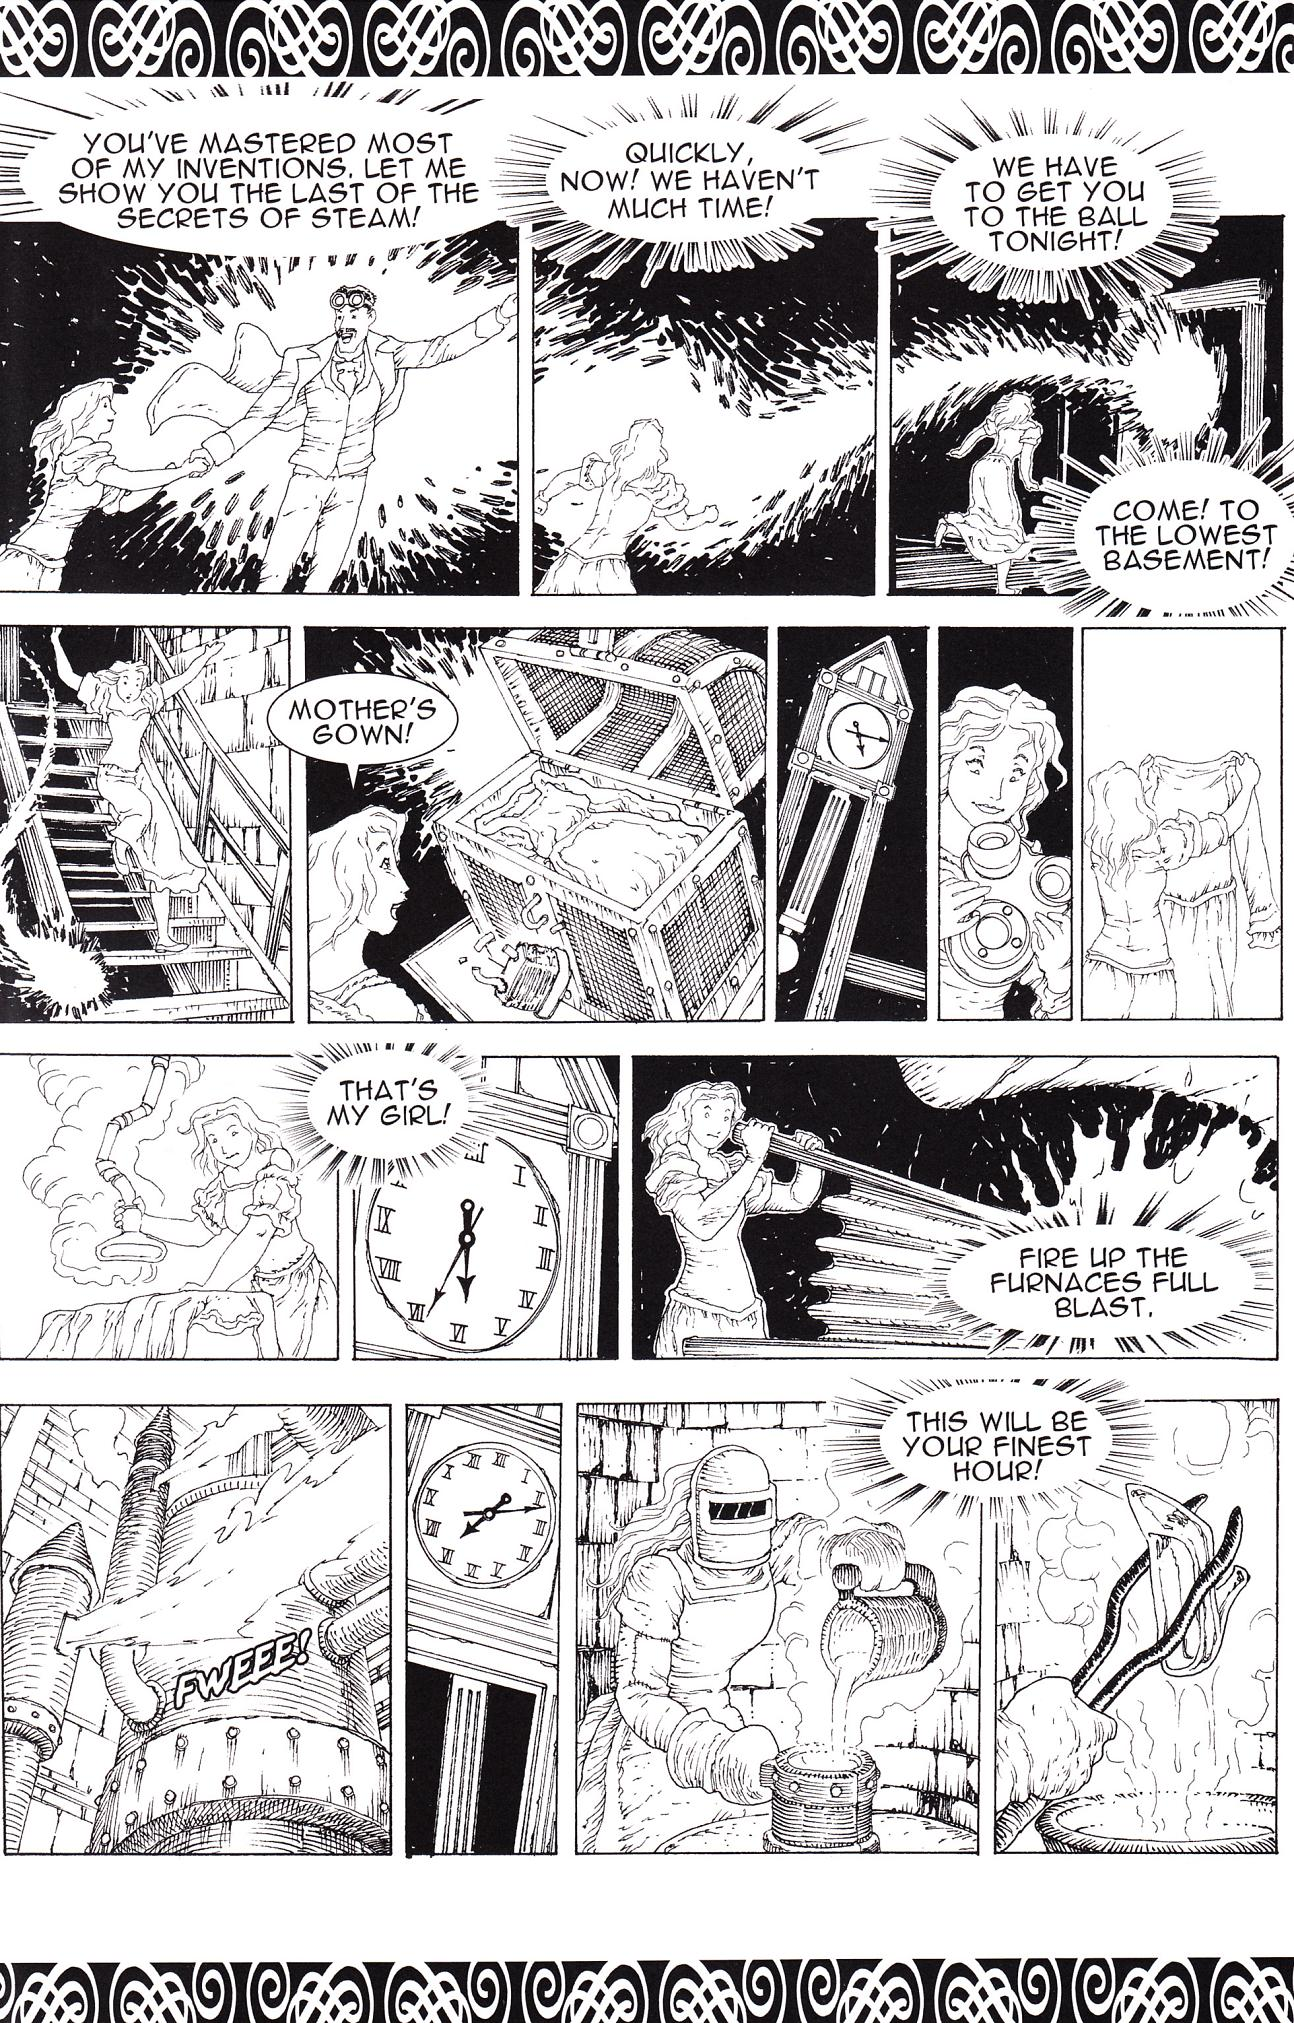 Read online Steampunk Fairy Tales comic -  Issue # Full - 24